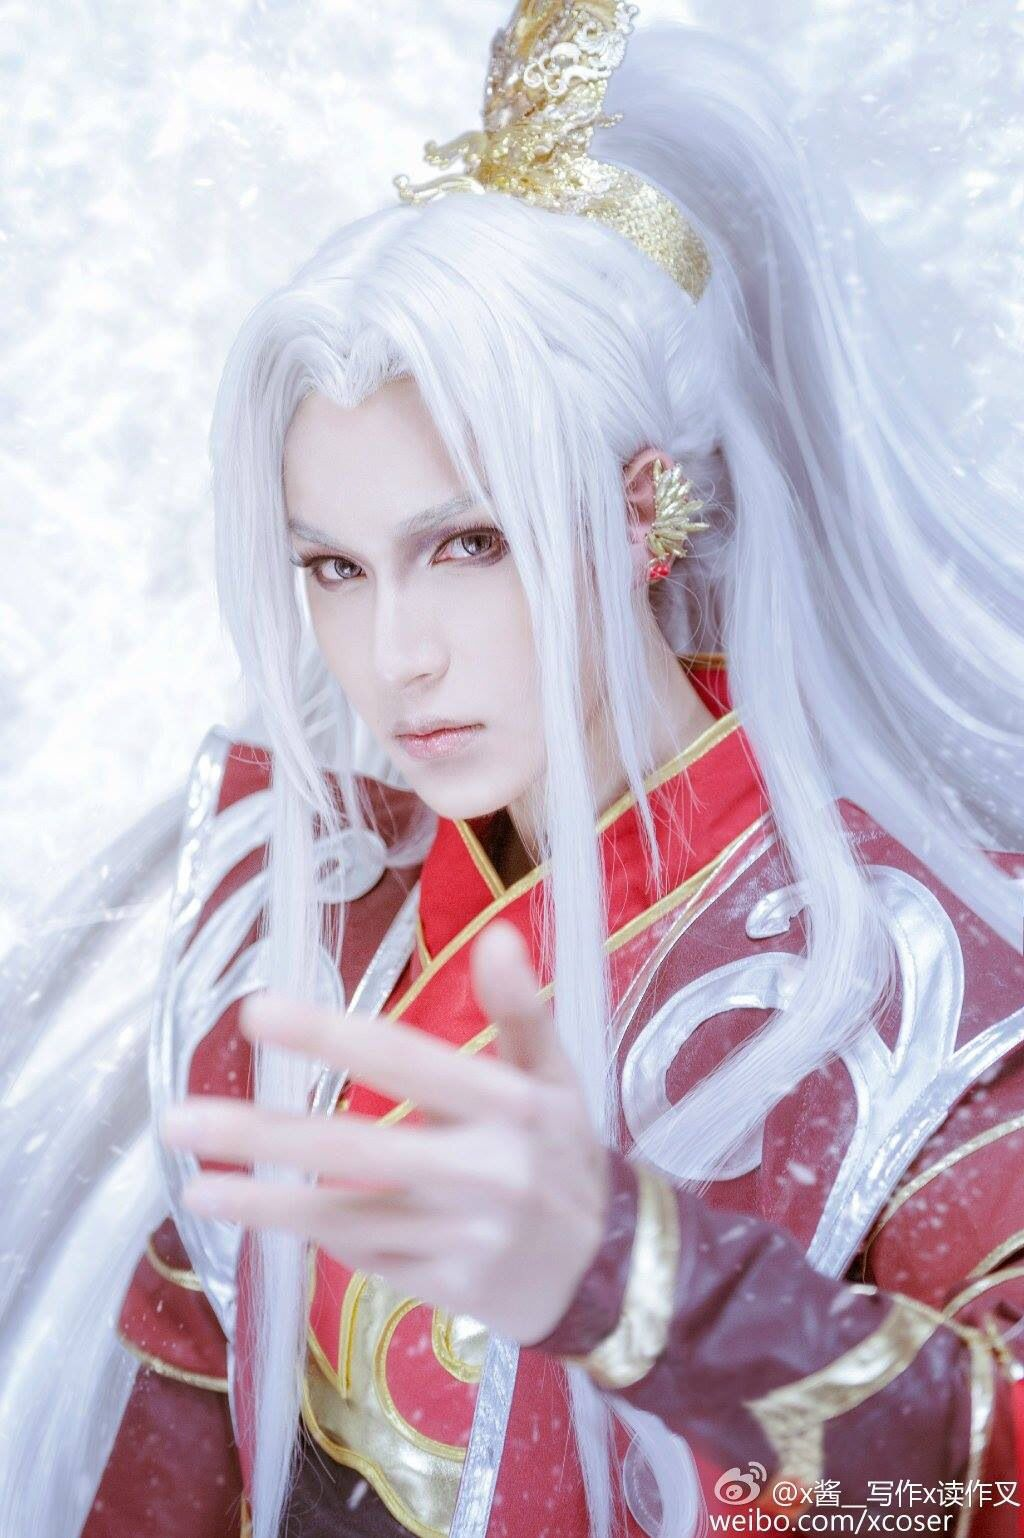 Pin by Ba Tu on cosplay | Asian cosplay, Cosplay, Male cosplay